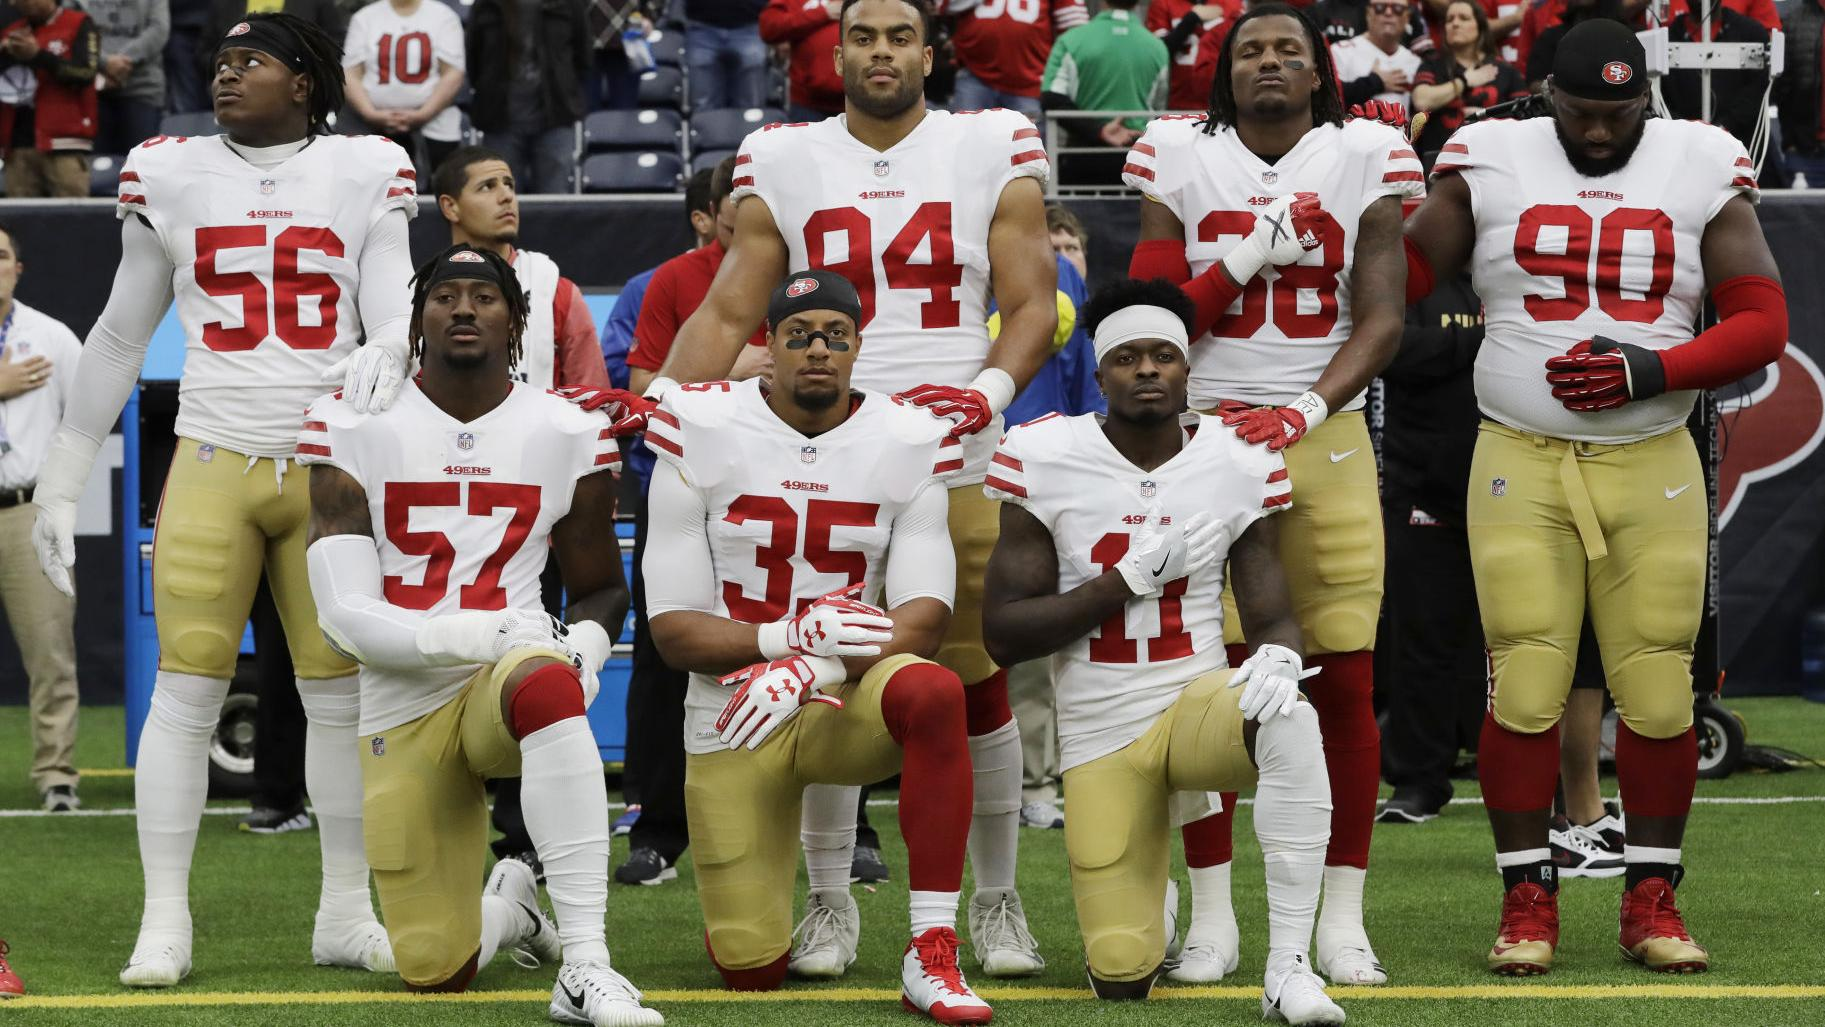 NFL owners adopt new policy to address national anthem protests